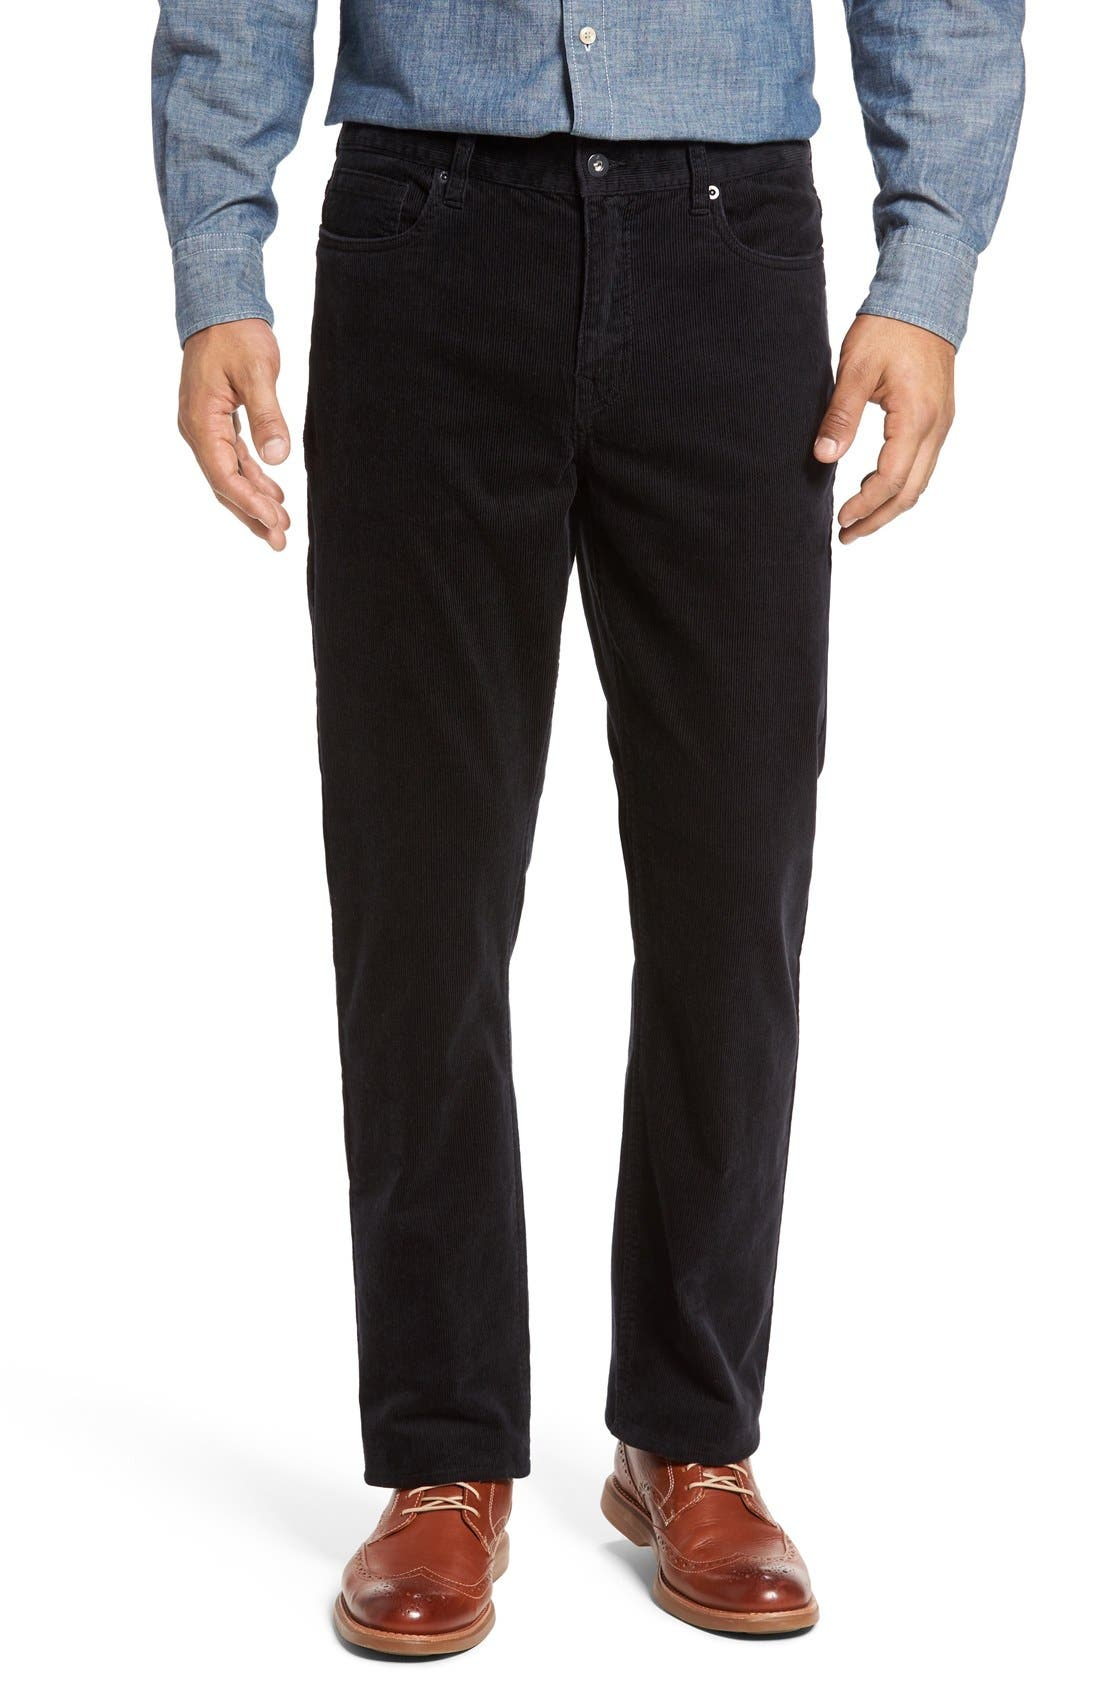 Greenwood Stretch Corduroy Pants,                         Main,                         color, BLACK